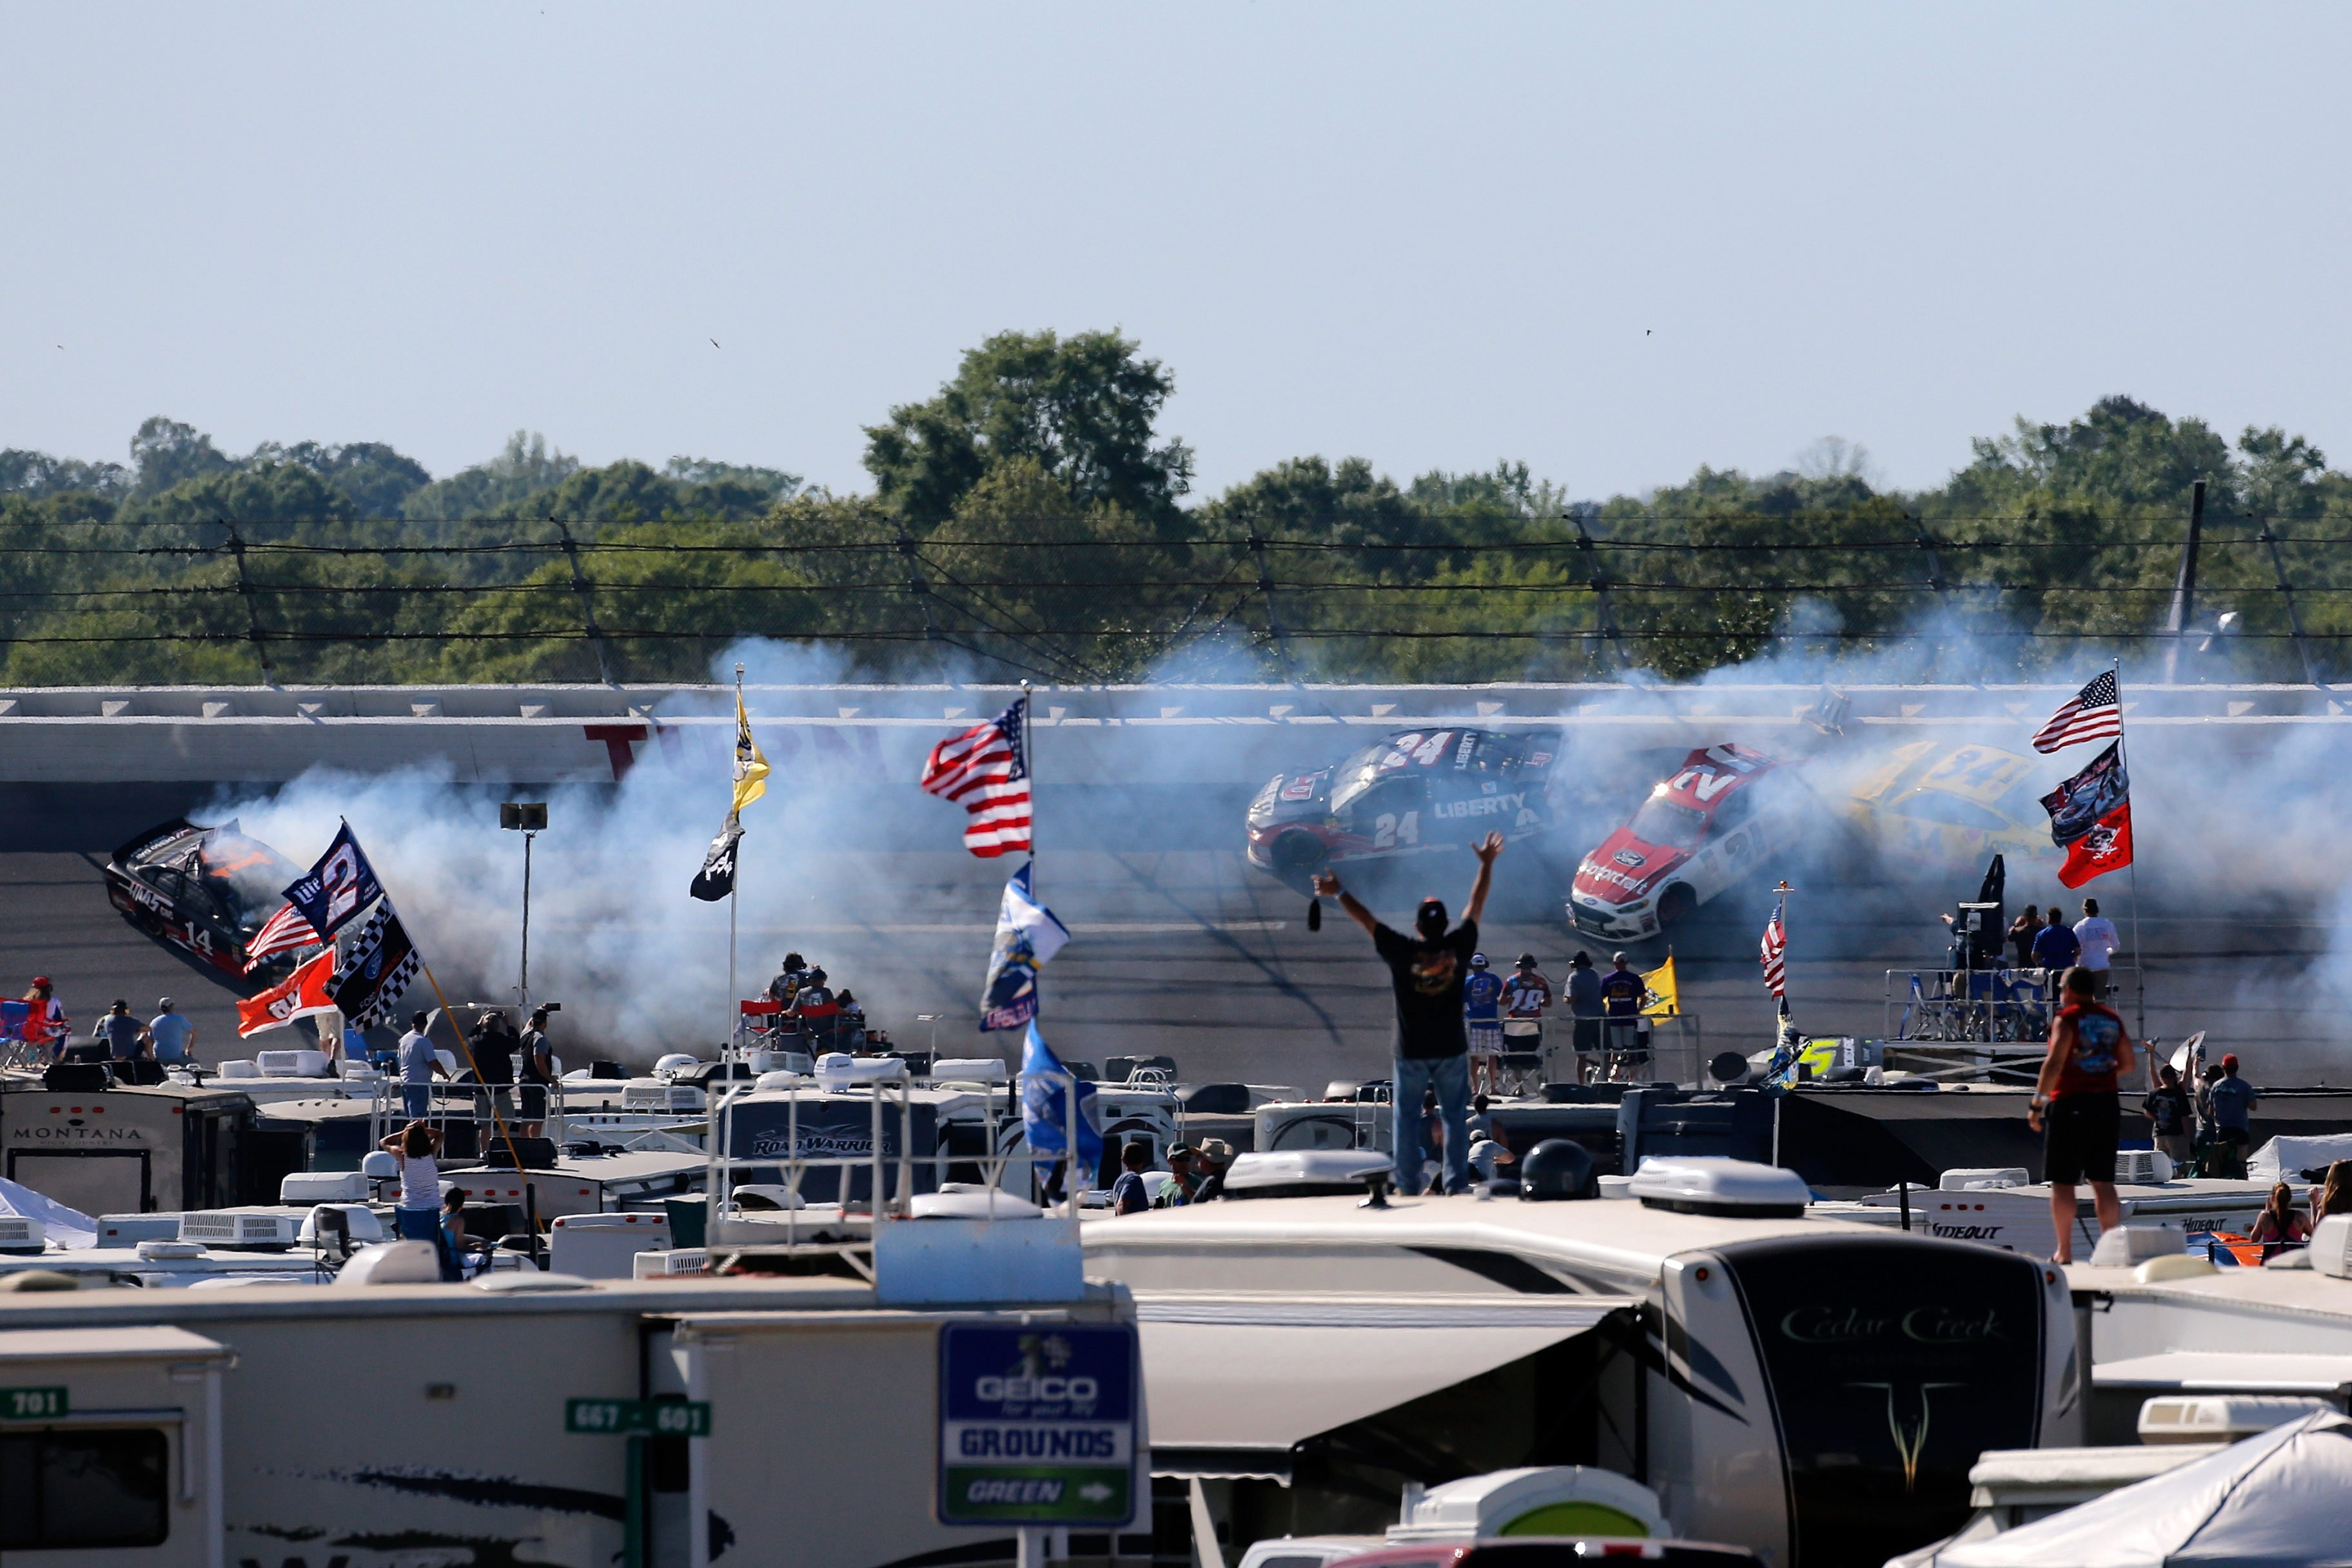 Big crash at Talladega Superspeedway